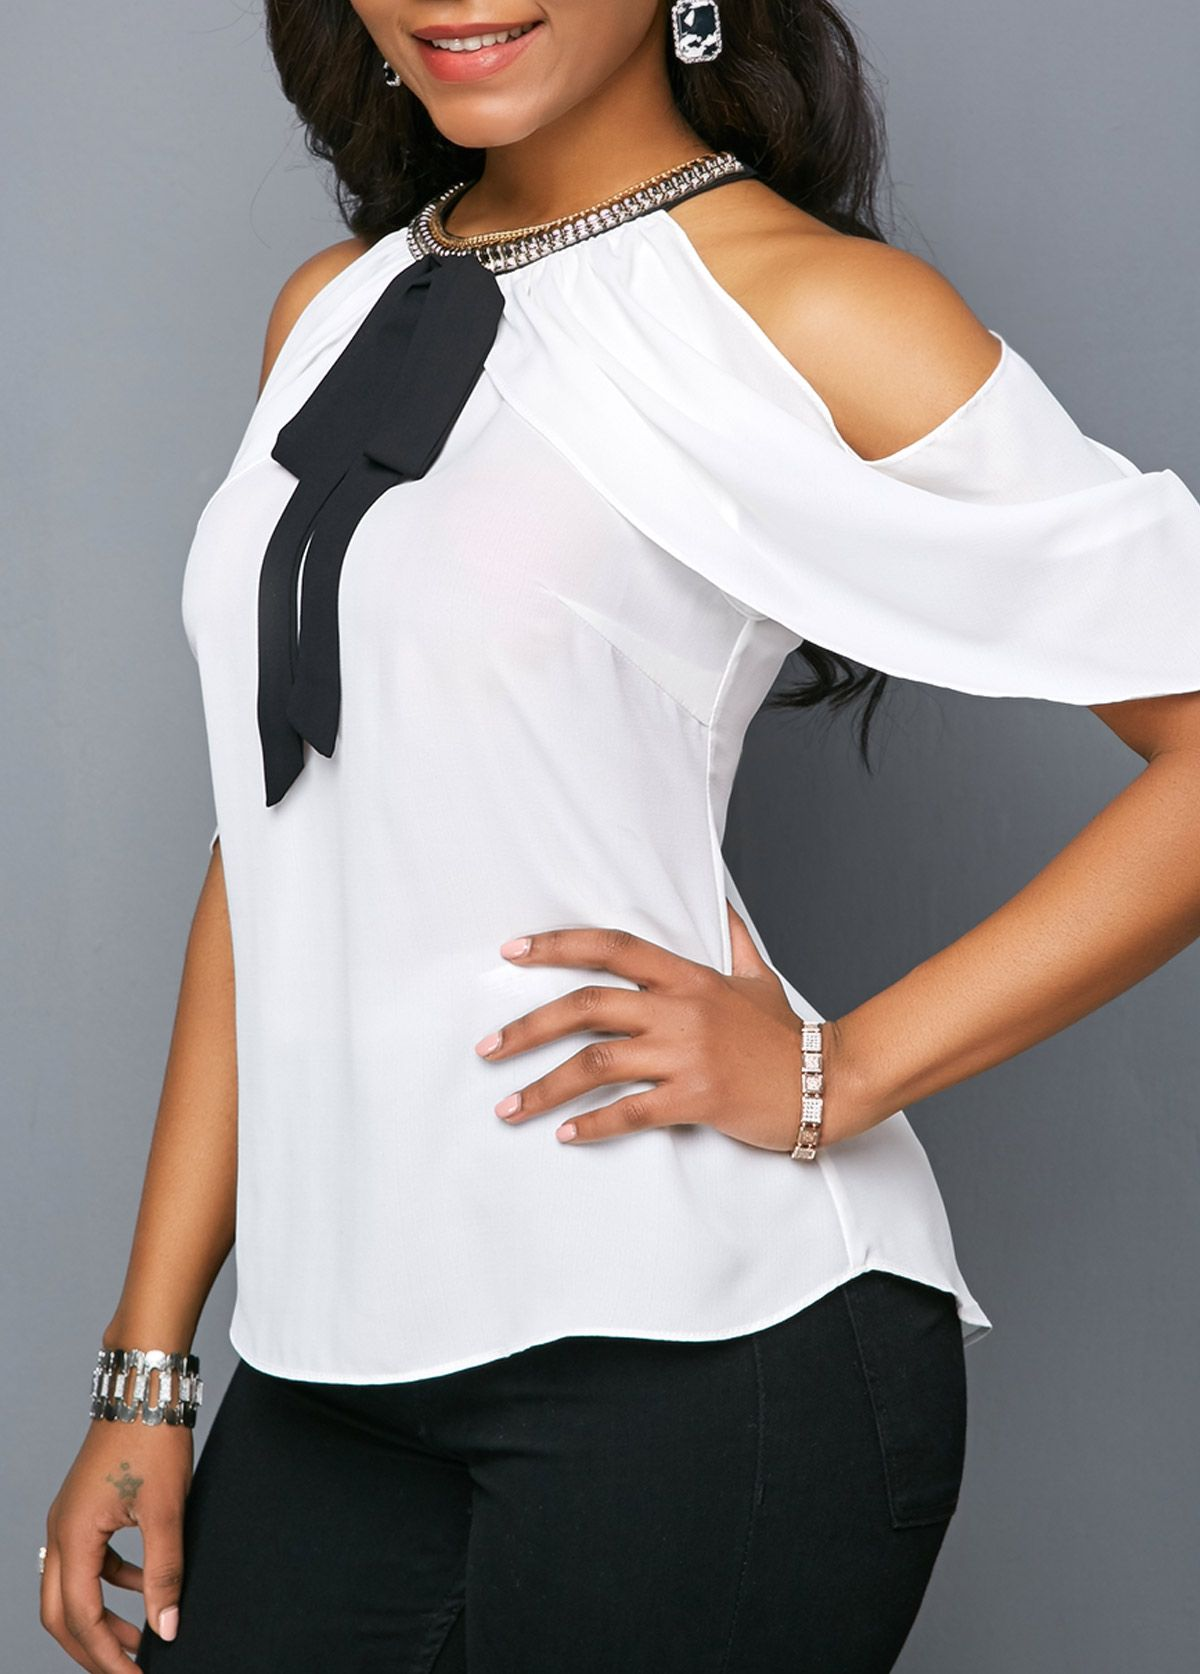 6dee9dc5b3c2 Embellished Neck Bowknot Detail Cold Shoulder Blouse | Rosewe.com - USD  $29.05